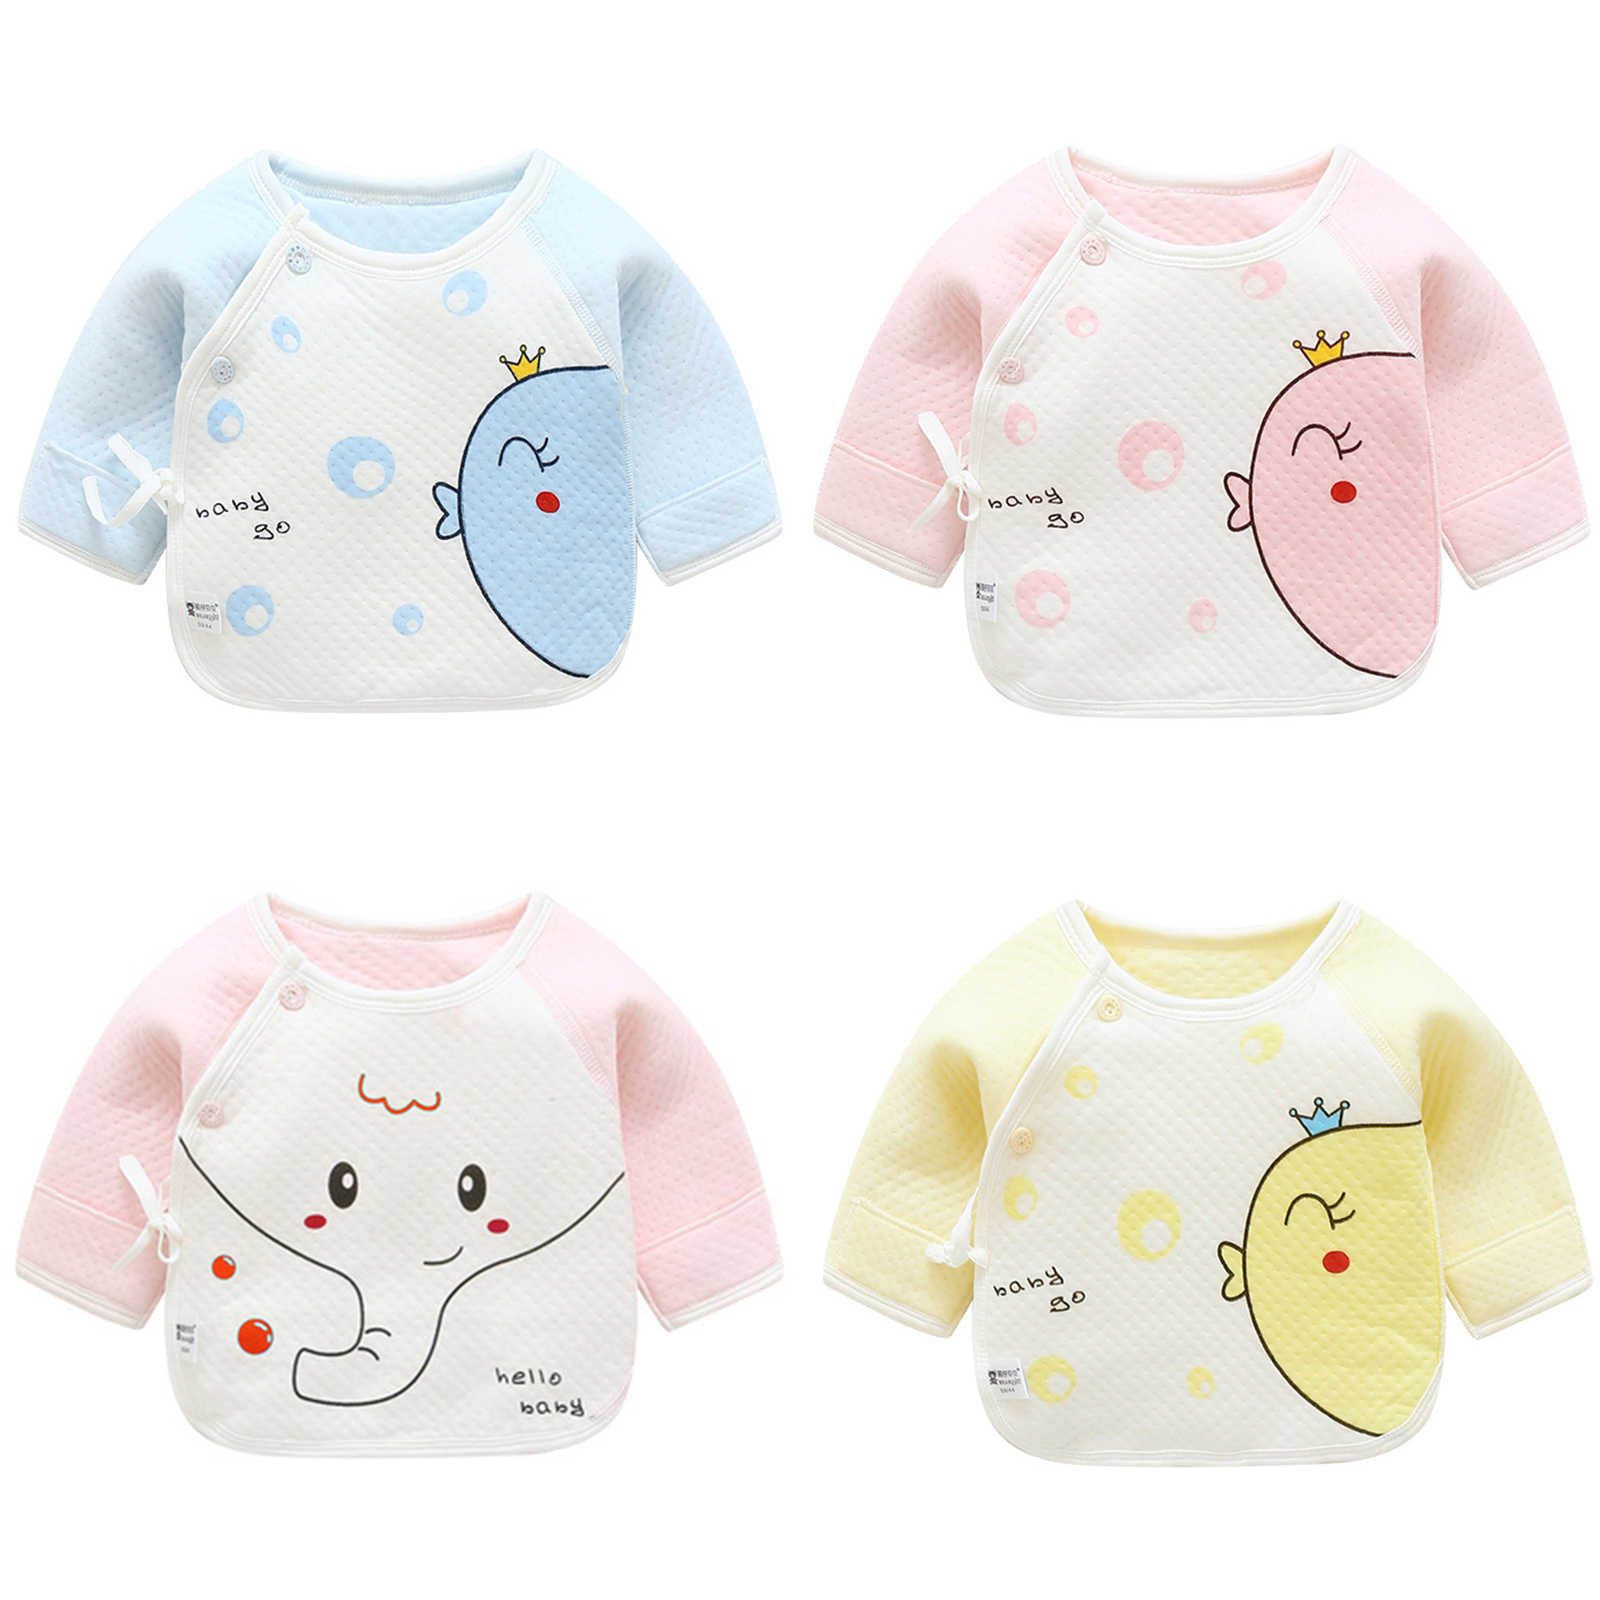 Spring Winter Newborns 0-3 M Baby Clothing 100% cotton Baby Blouses half-back Boy Girl premature baby Full Sleeve Shirts Summer